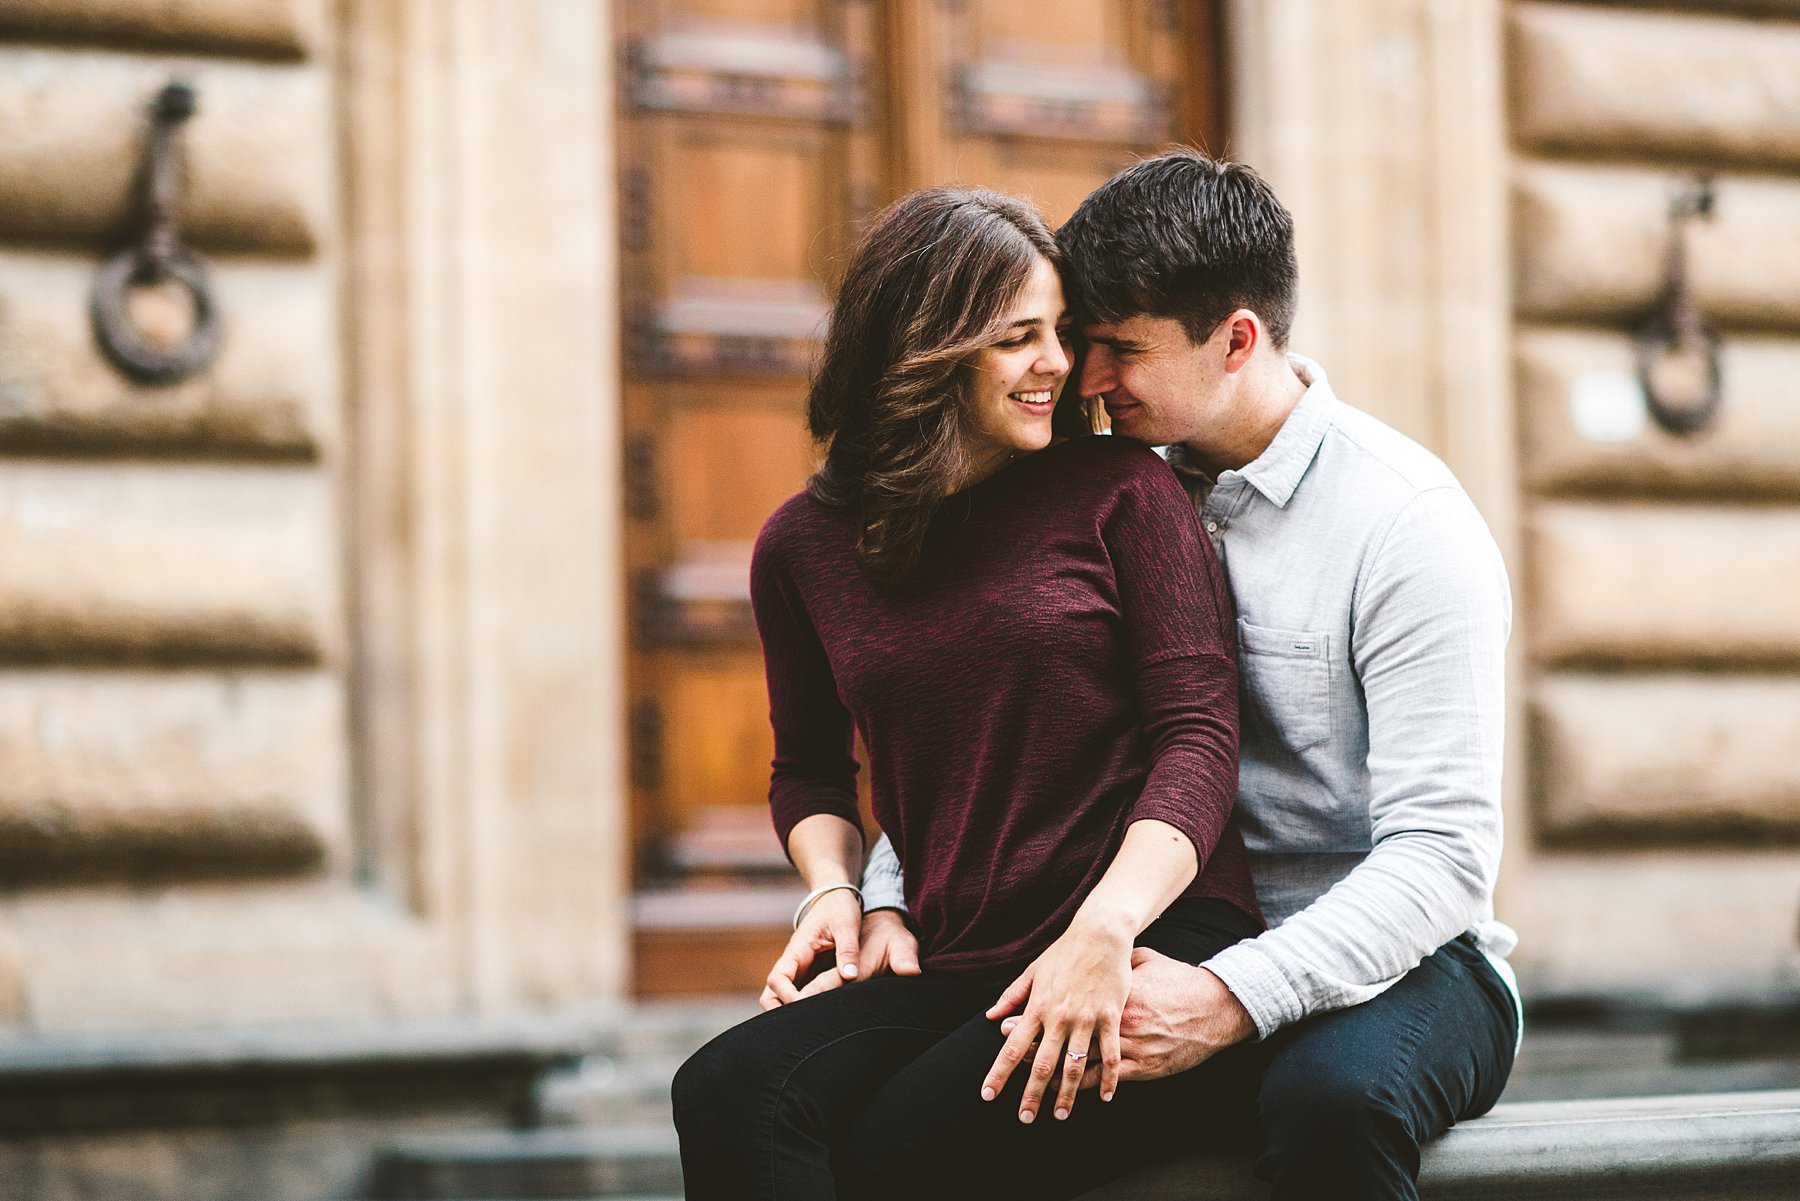 Elegant and beautiful engagement photo shoot in the heart of Florence near Piazza della Signoria and one of the most beautiful palace of the city, Palazzo Gondi with their unforgettable and beautiful ancient doors